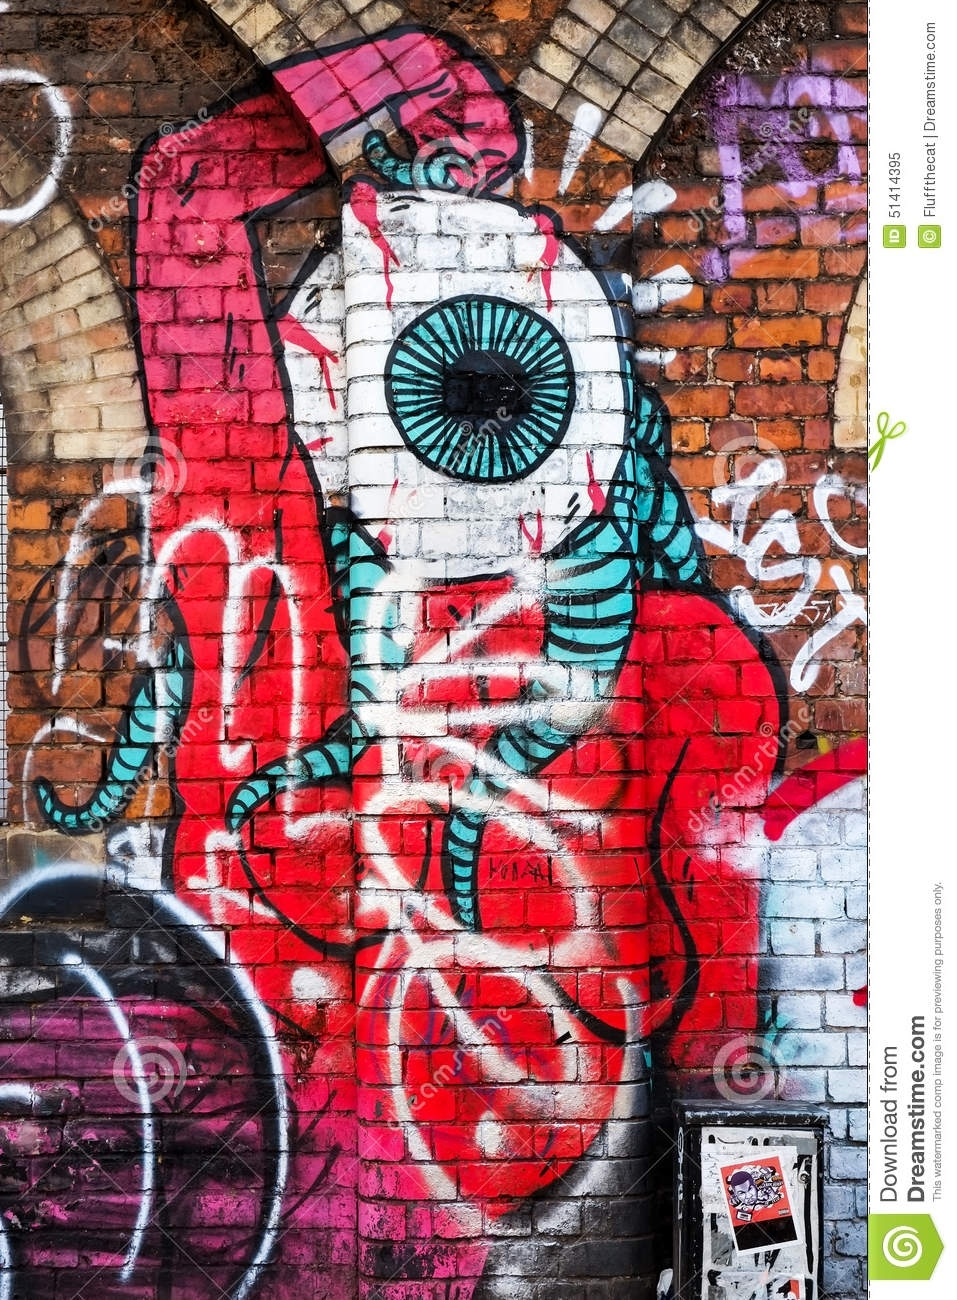 Monster Creature With Big Eye, Graffiti Wall Art, London Uk With Regard To Most Up To Date Abstract Graffiti Wall Art (View 4 of 20)